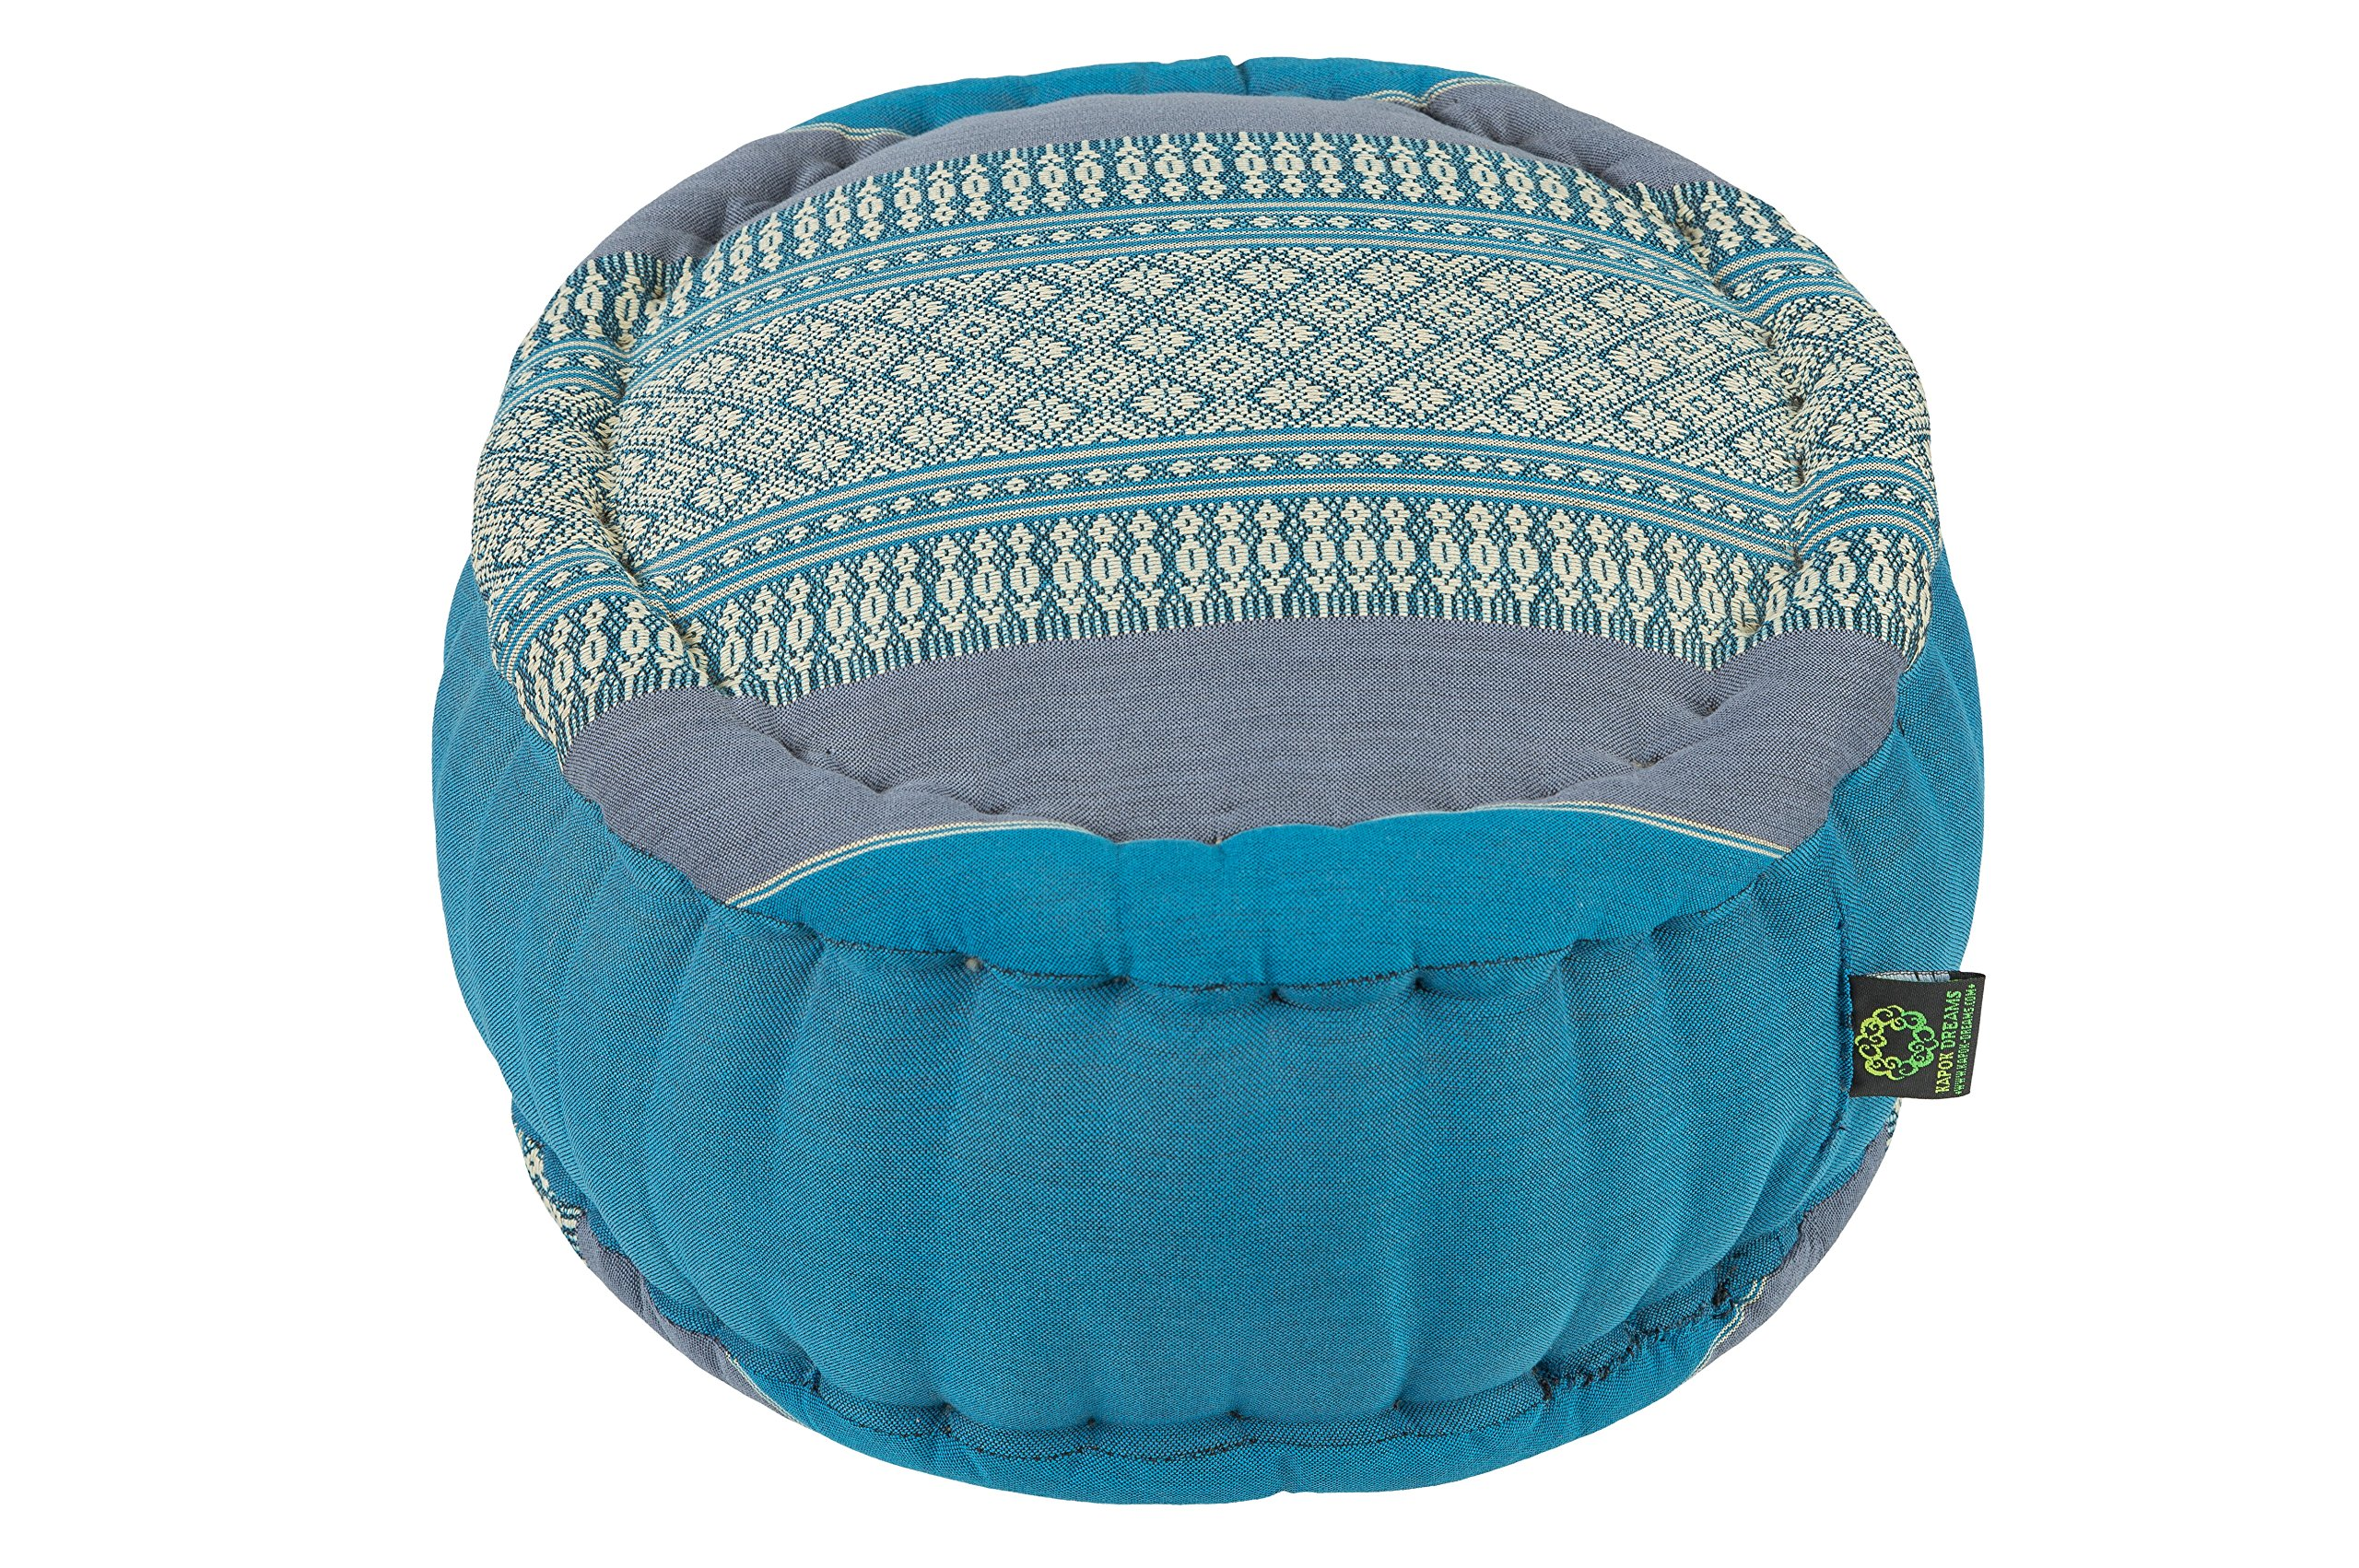 Kapok Dreams; Zafu Round Meditation Cushion 100% Kapok, Blue Tones, Thai Design Pillow